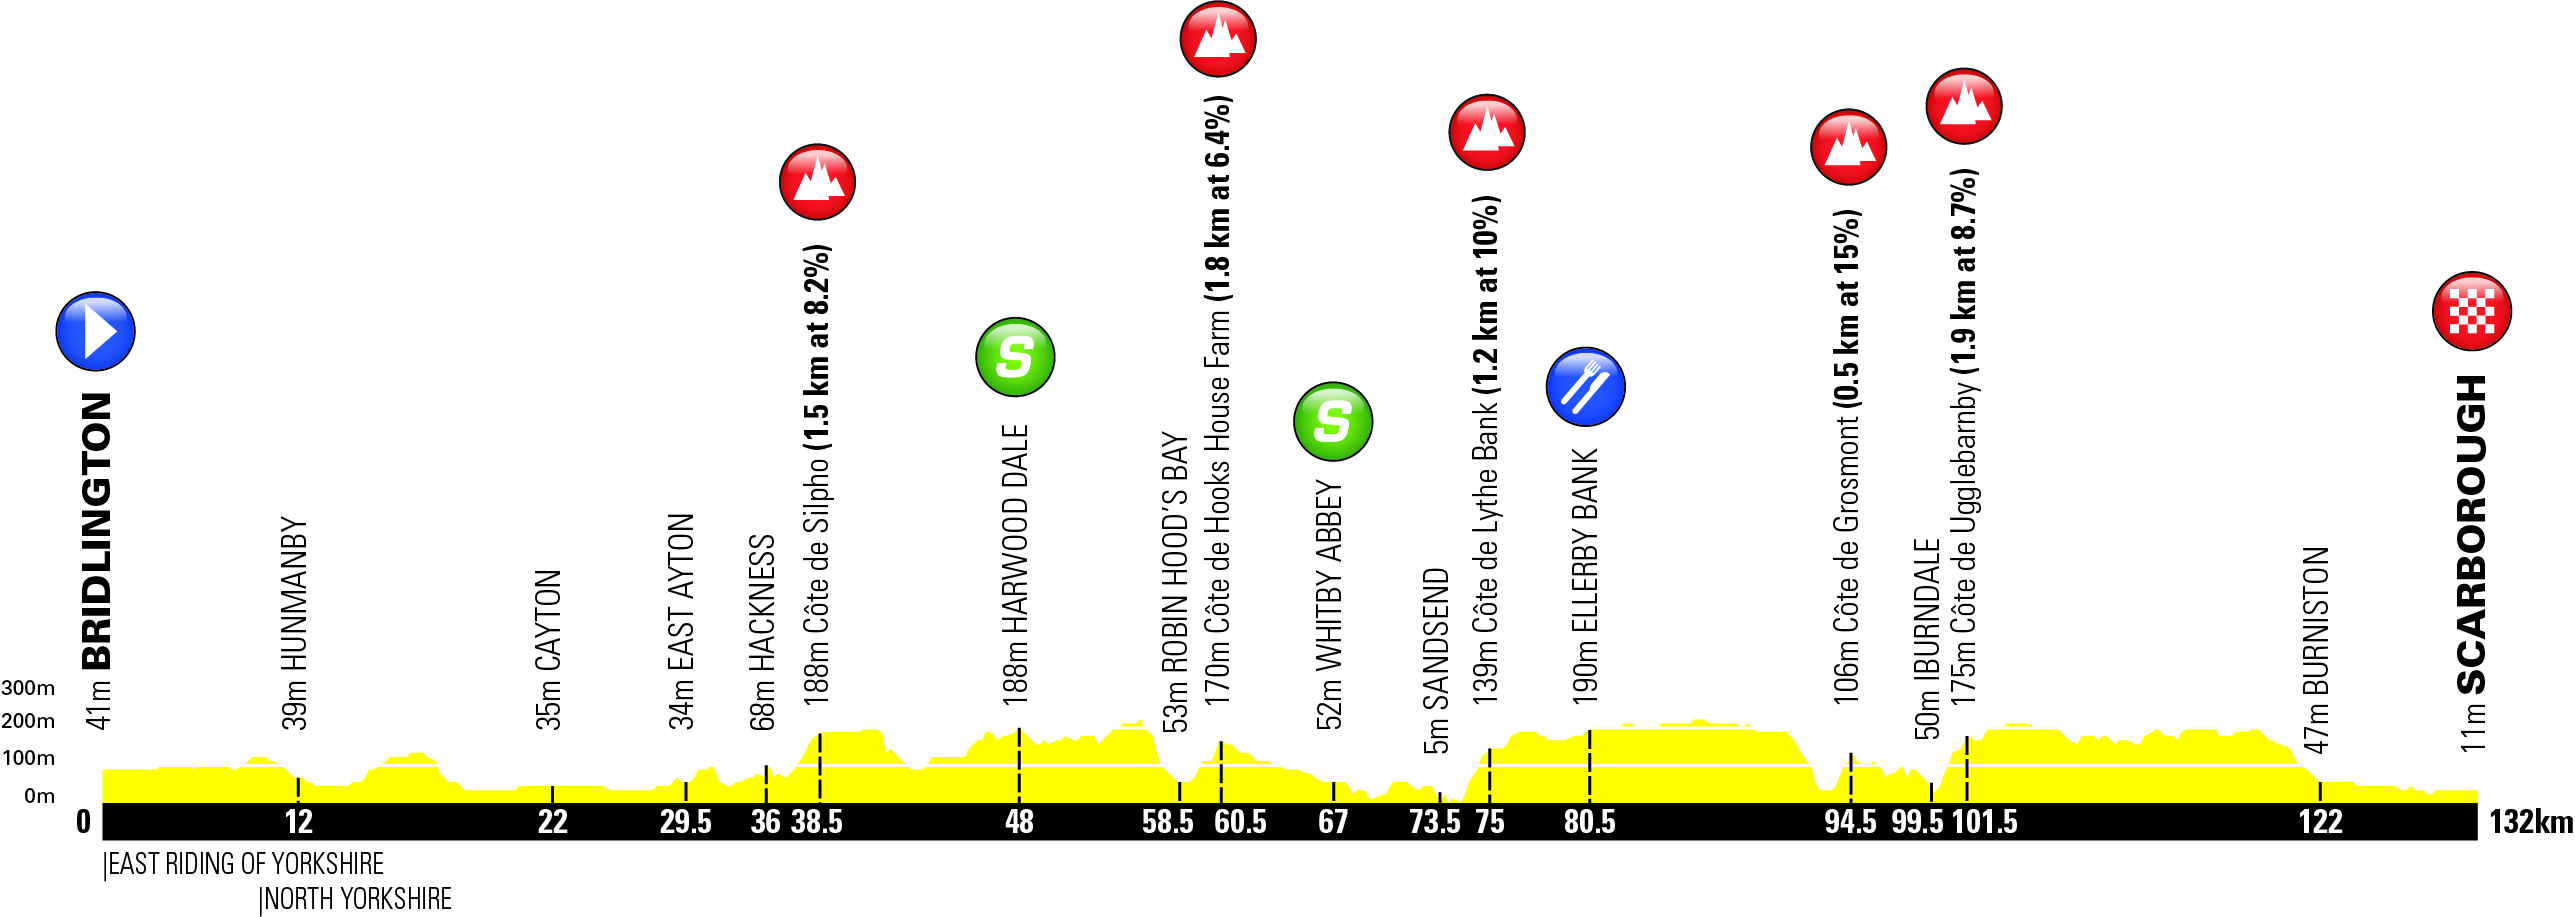 tdy19_stage3.jpg